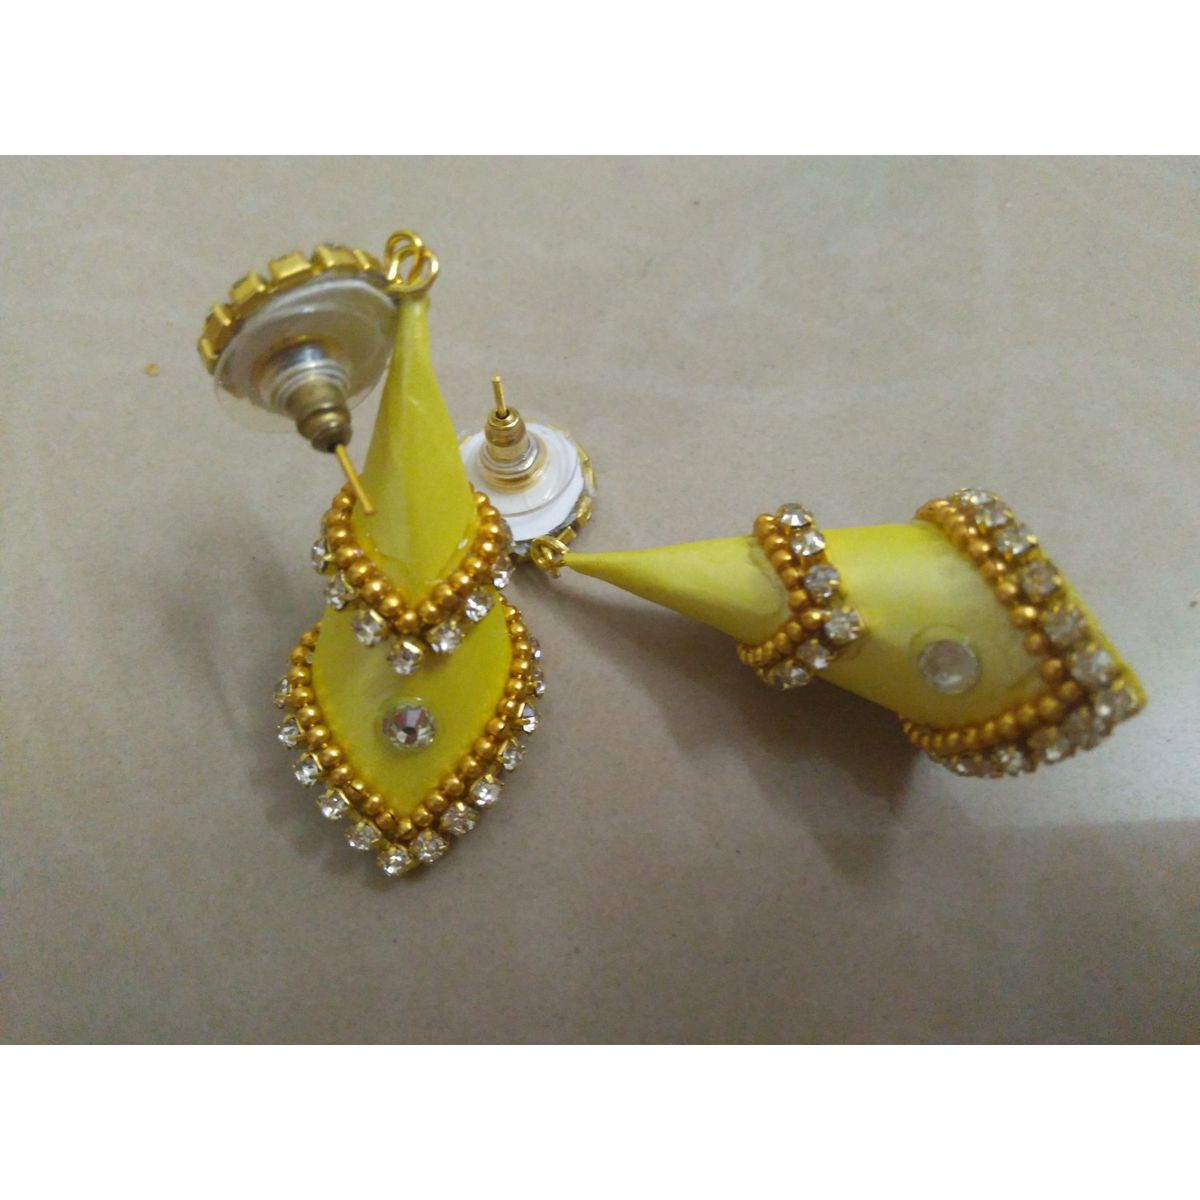 with from different really in quality good they of product sarees haul indian amazing got goes reviews i shops finishing them earrings above also silkyresh india accessories and s traditional are all